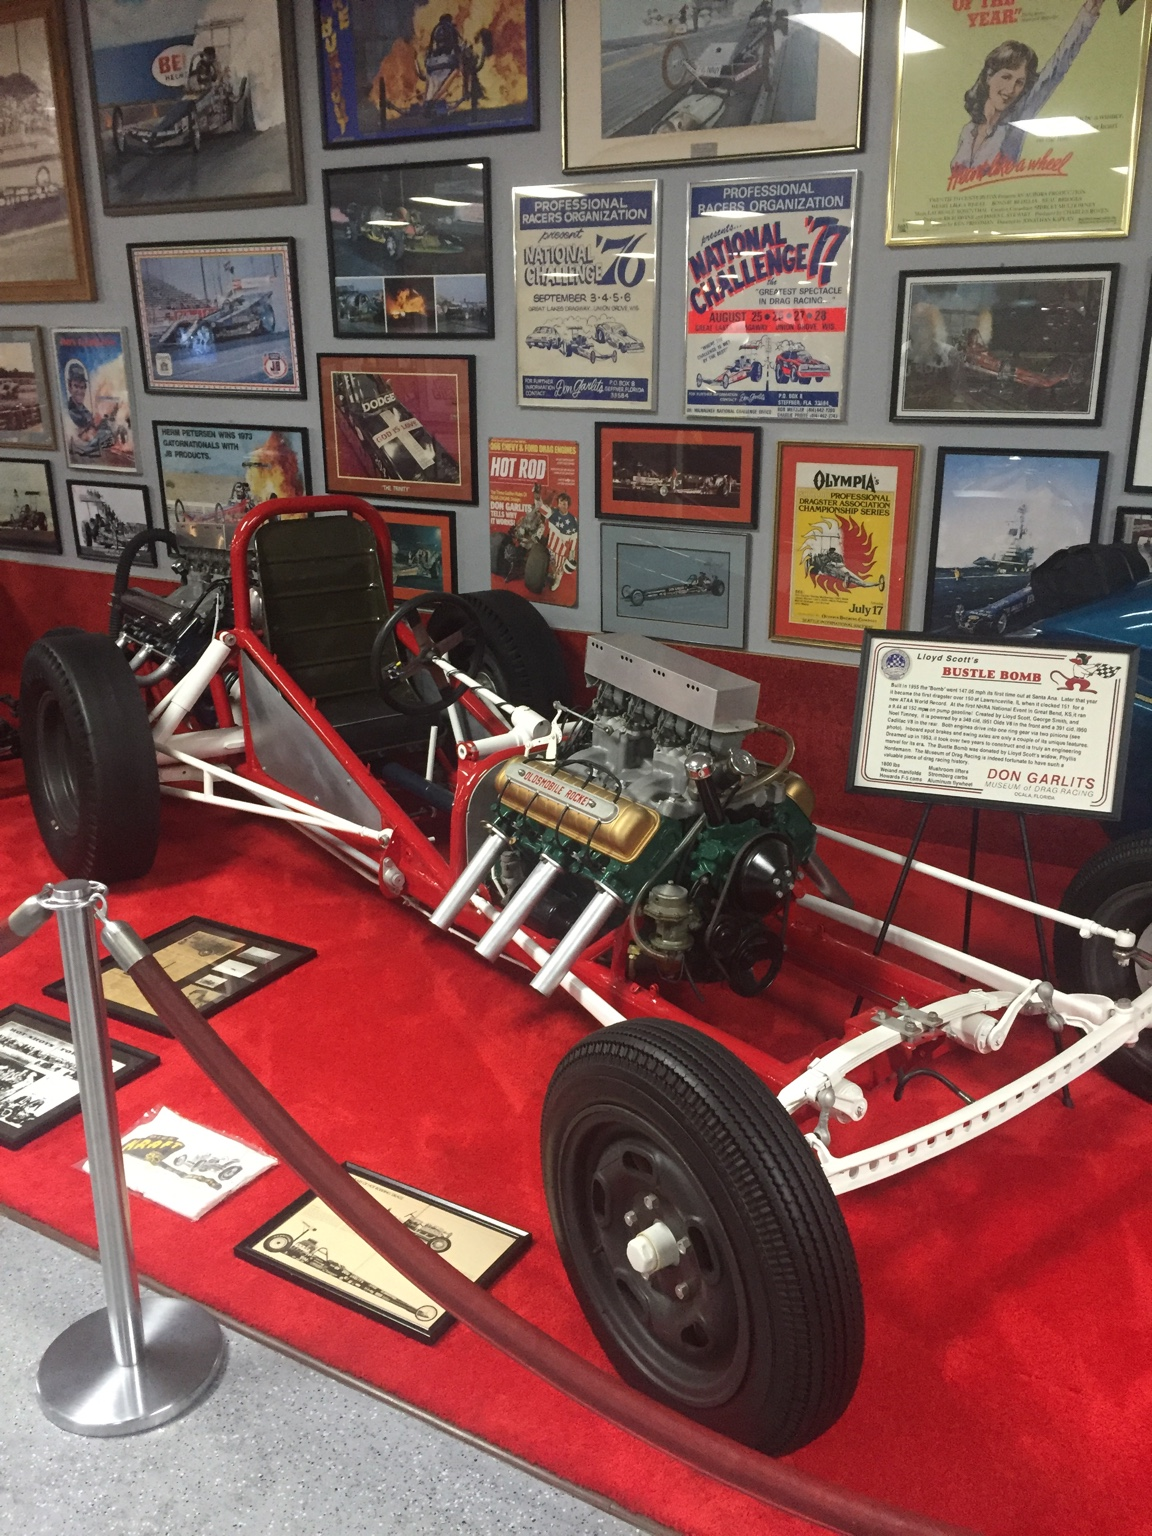 Event Coverage I Visited The Don Garlits Museum Today The HAMB - Don garlits museum car show